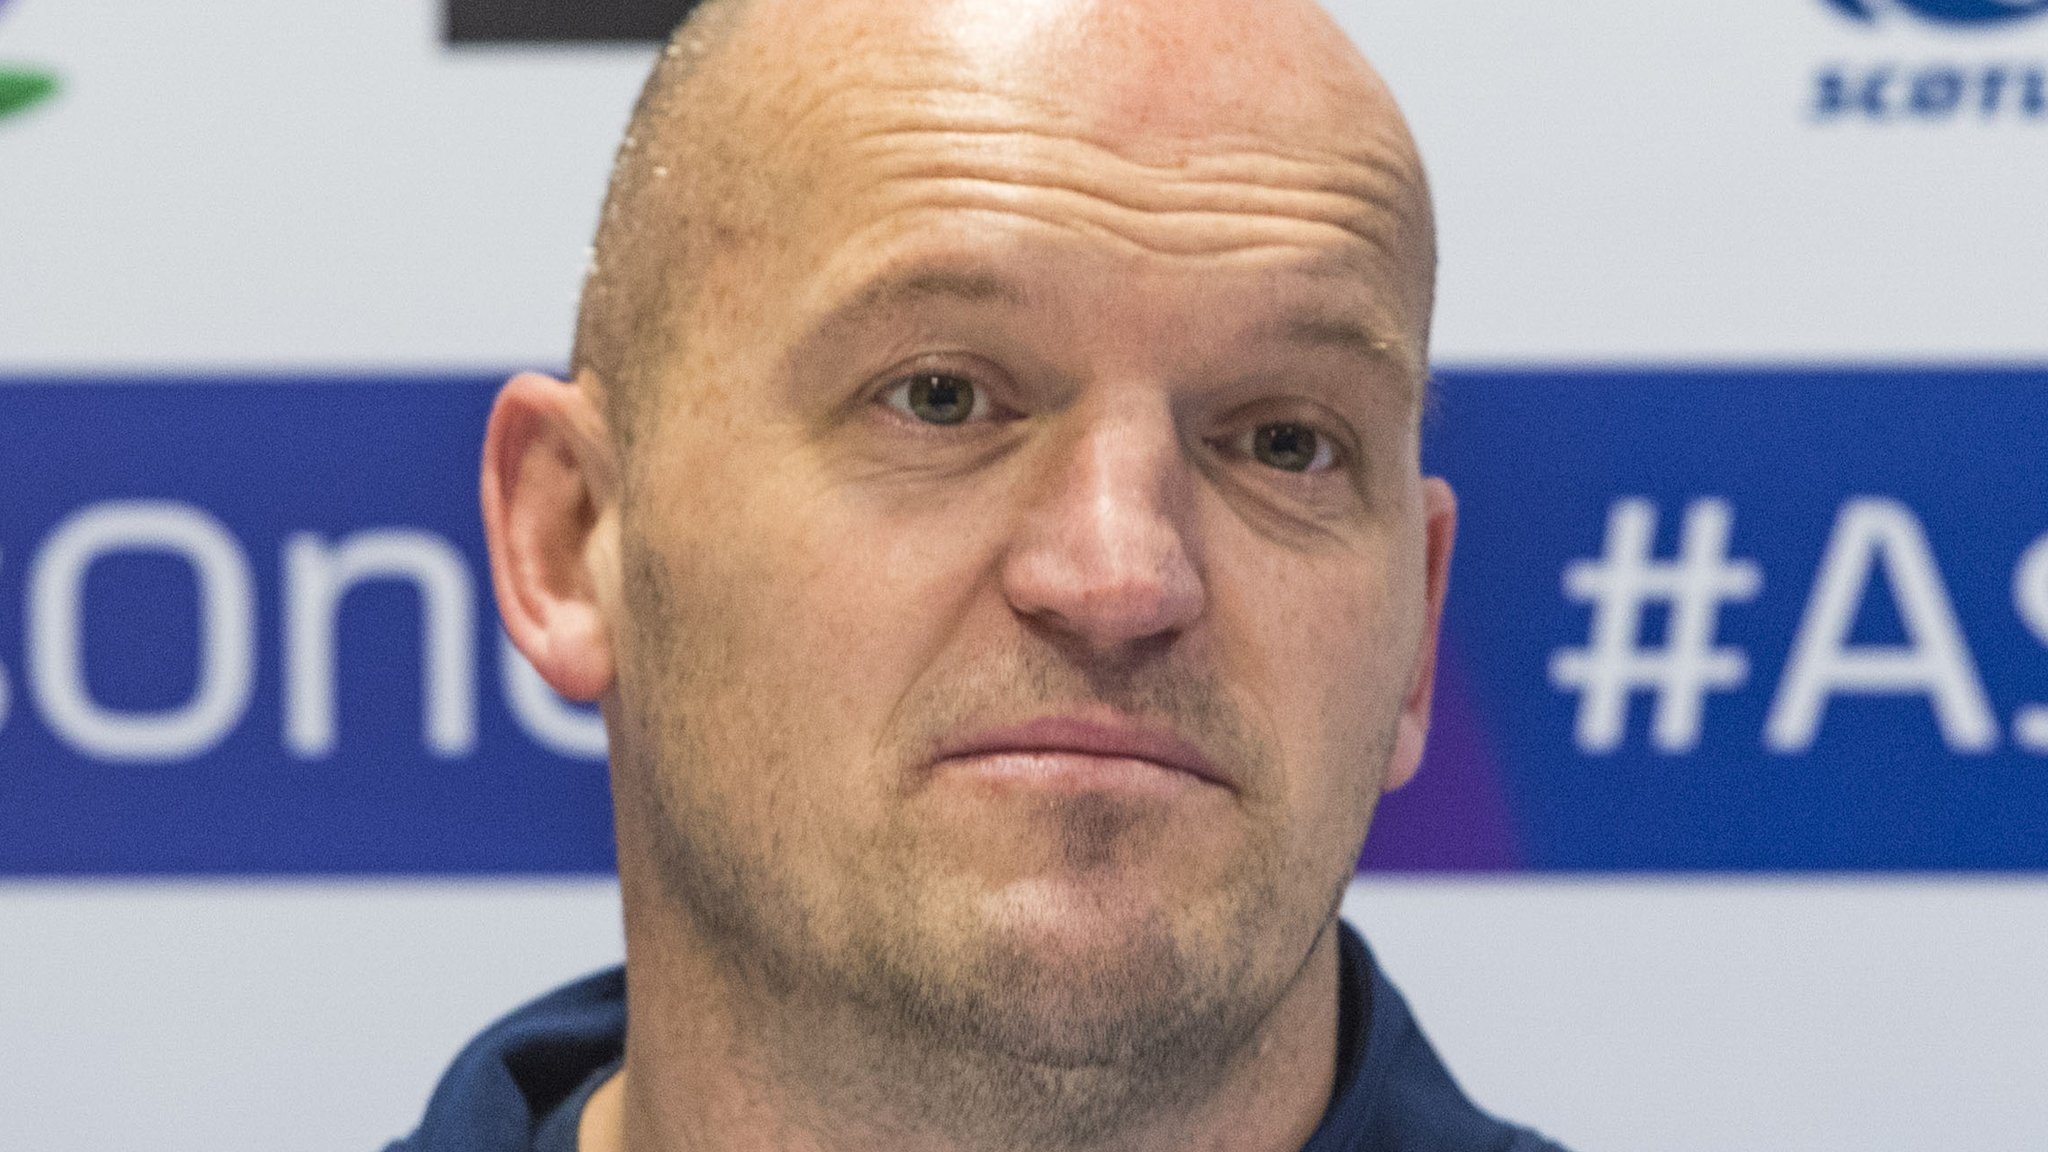 Six Nations 2019: Gregor Townsend - Scotland 'can win' title despite injuries